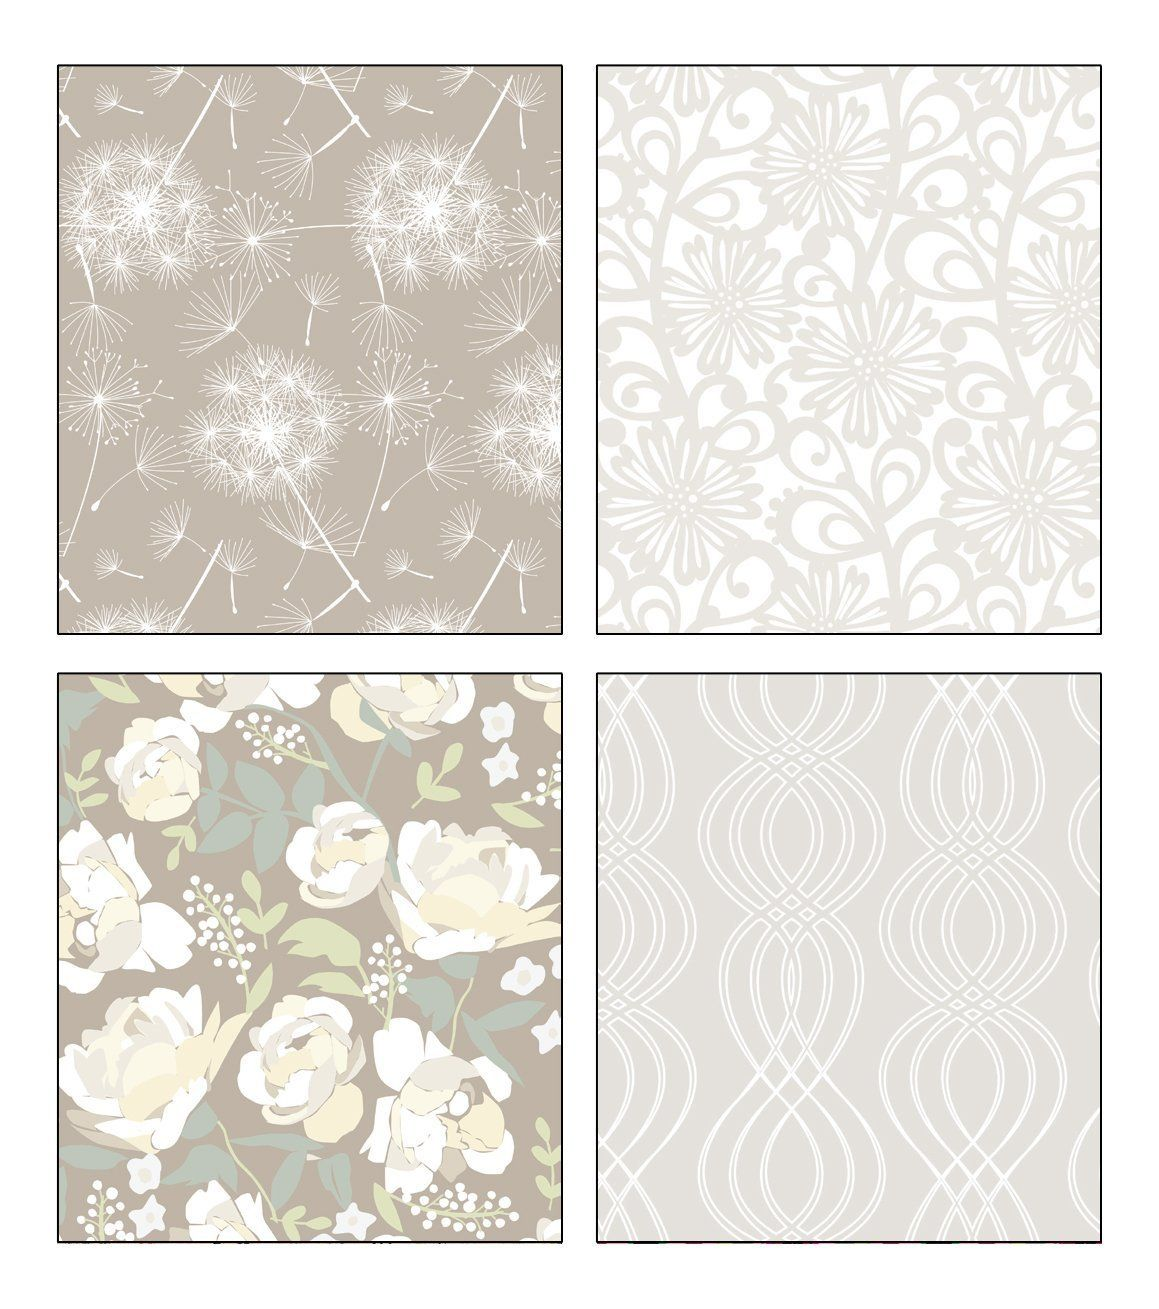 The Gift Wrap Company 4 Different Flower Design Medium Weight Wrapping Papers - 5 Feet x 30-Inch Roll (1 Roll Pearlized and 1 Roll Glittered with Gloss Finish) > Trust me, this is great! Click the image. : Wrapping Ideas